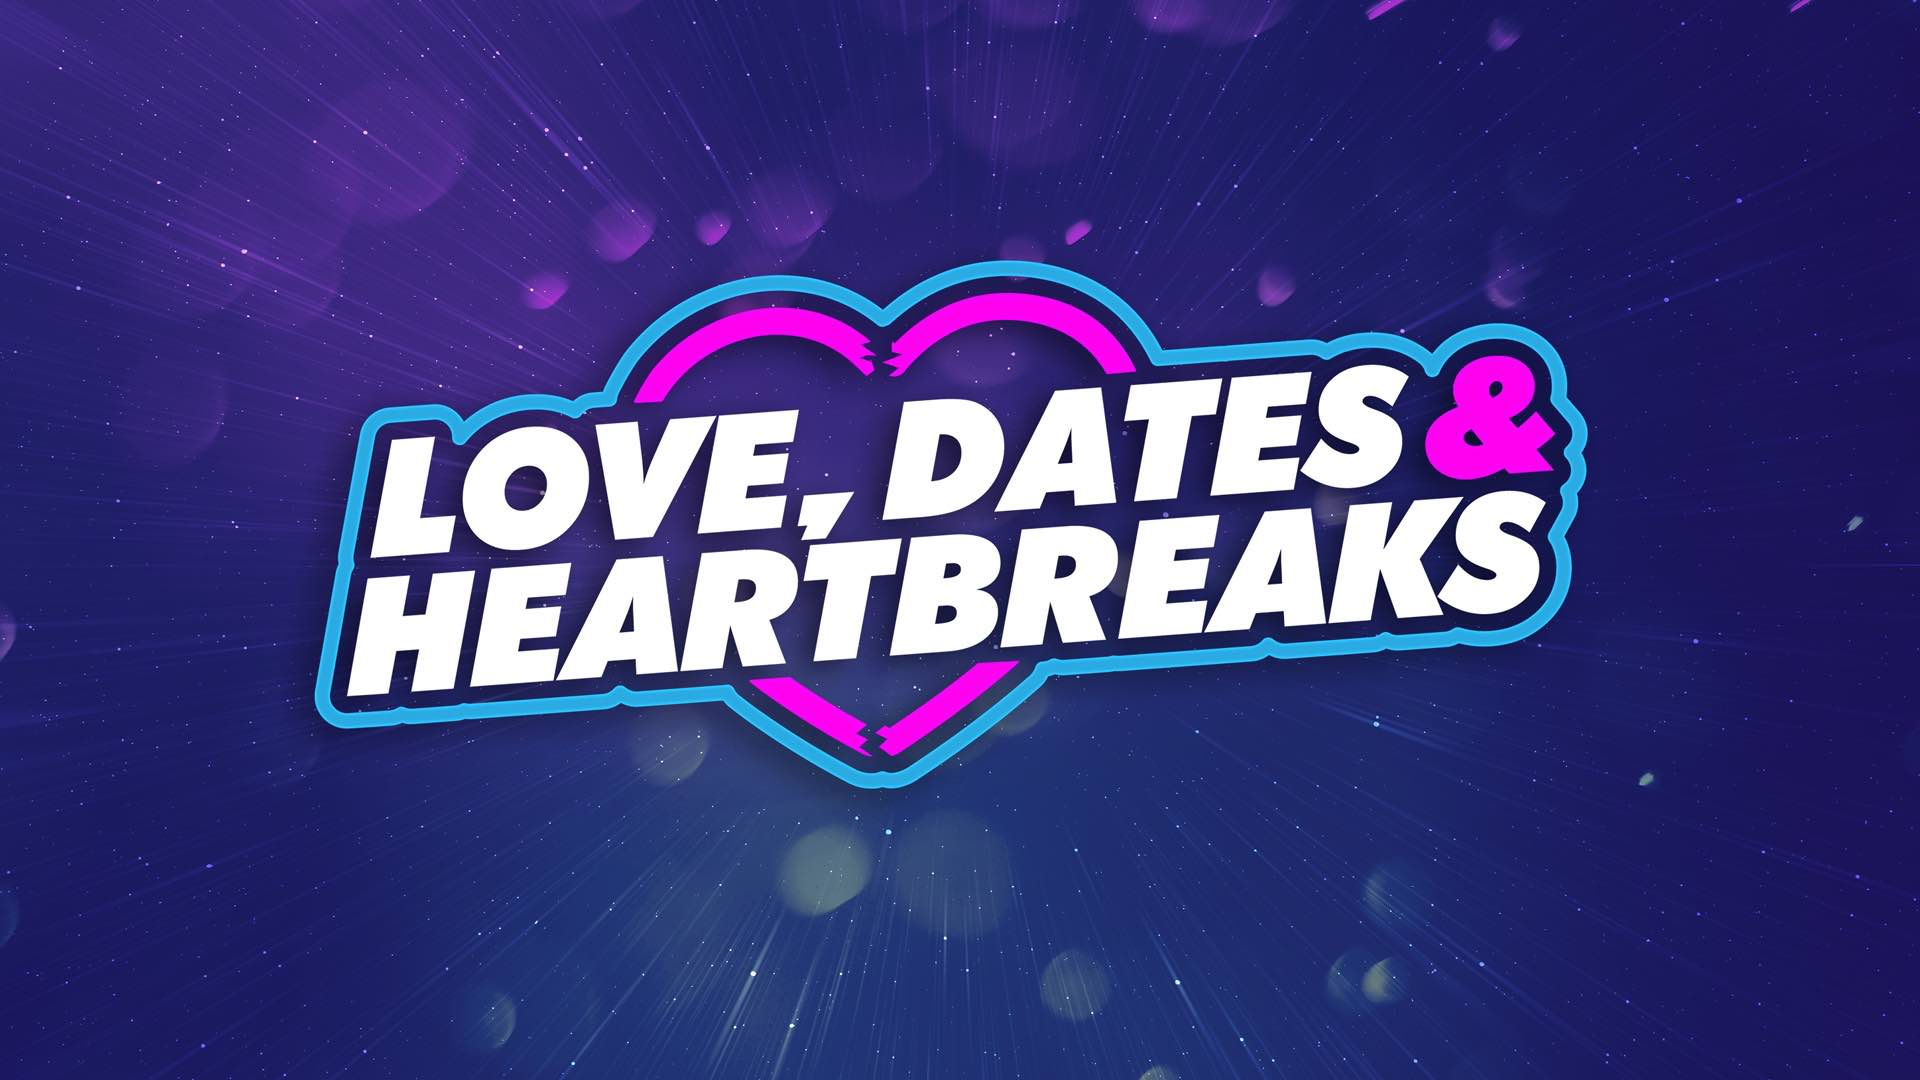 Love, Dates & Heartbreaks